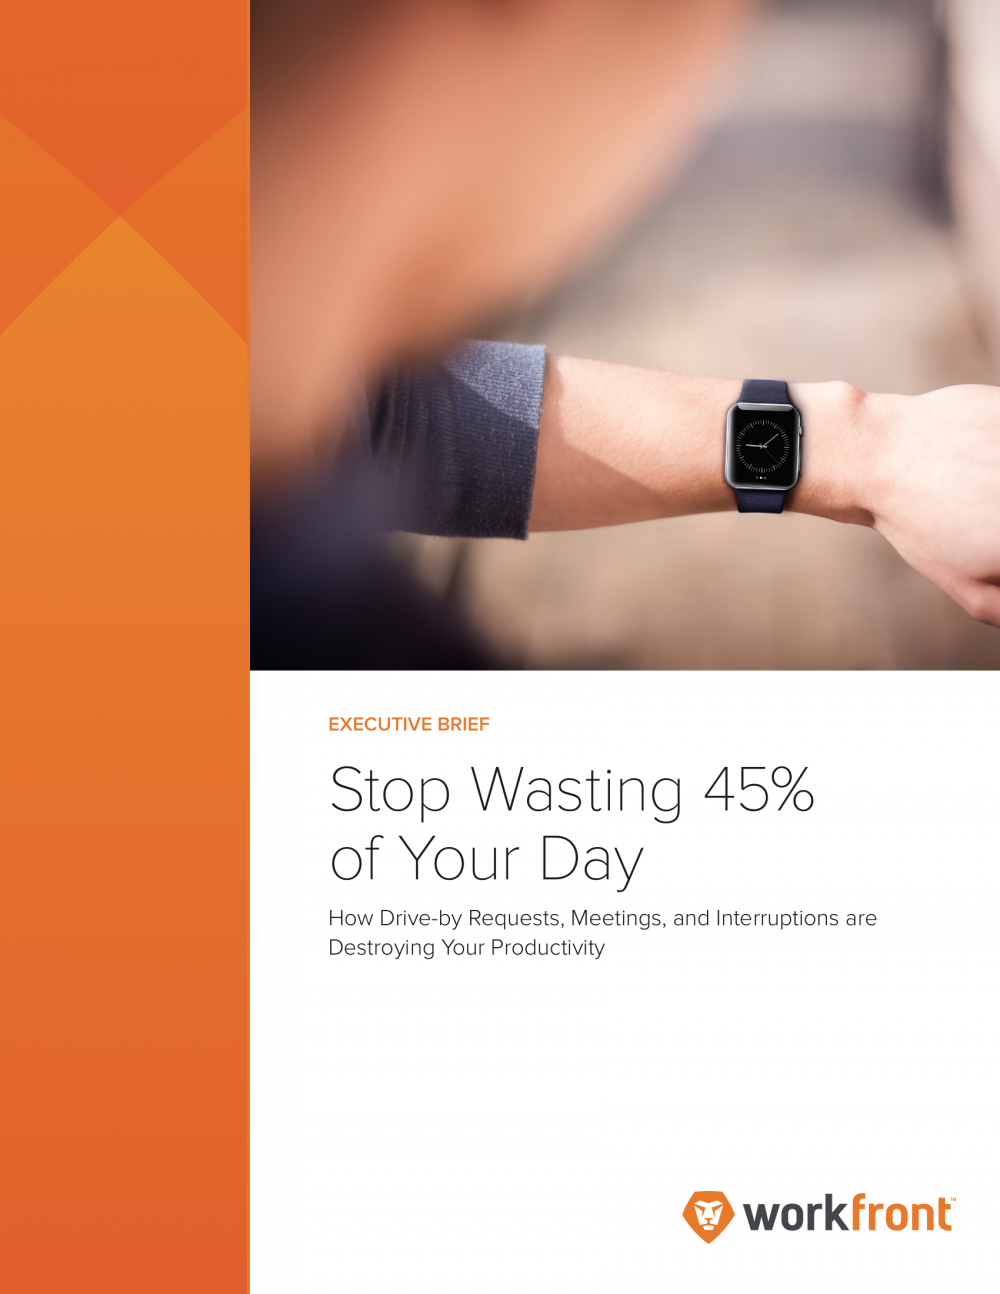 Stop Wasting 45% of Your Day